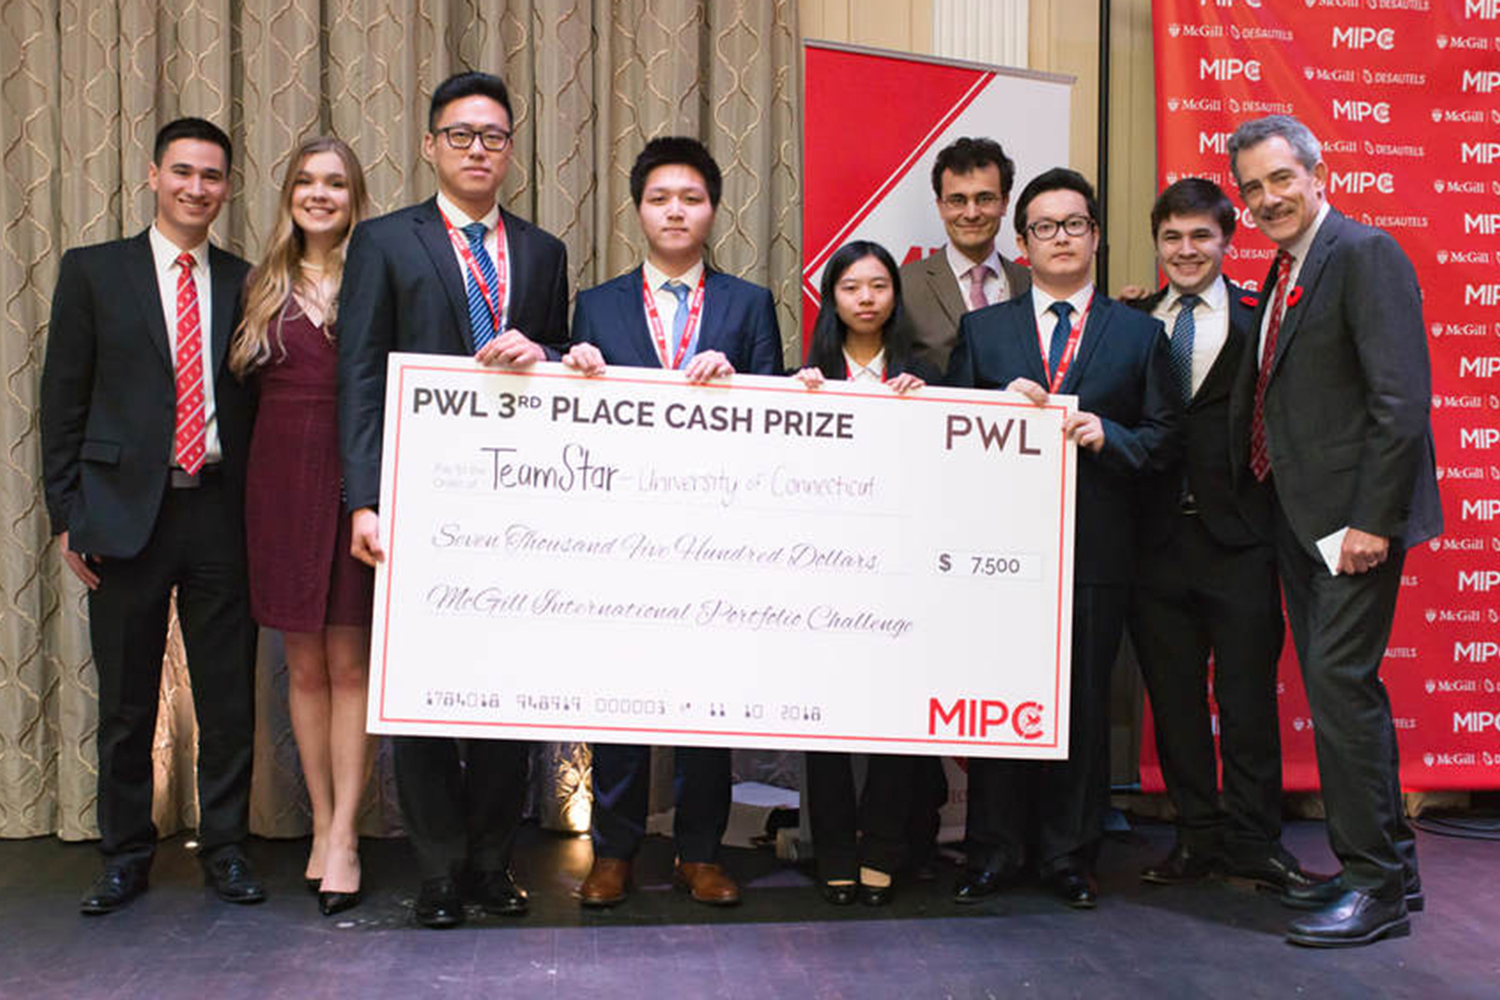 UConn students, from left, Junchao Liao, Xiofan Hou, Xiao Wang and Tuershunjiang Ahemaitijiang hold their check after being recognized as the top U.S. team at the McGill International Portfolio Challenge in Montreal earlier this month. They are surrounded by event organizers. (Photo Courtesy of Jose Aponte)